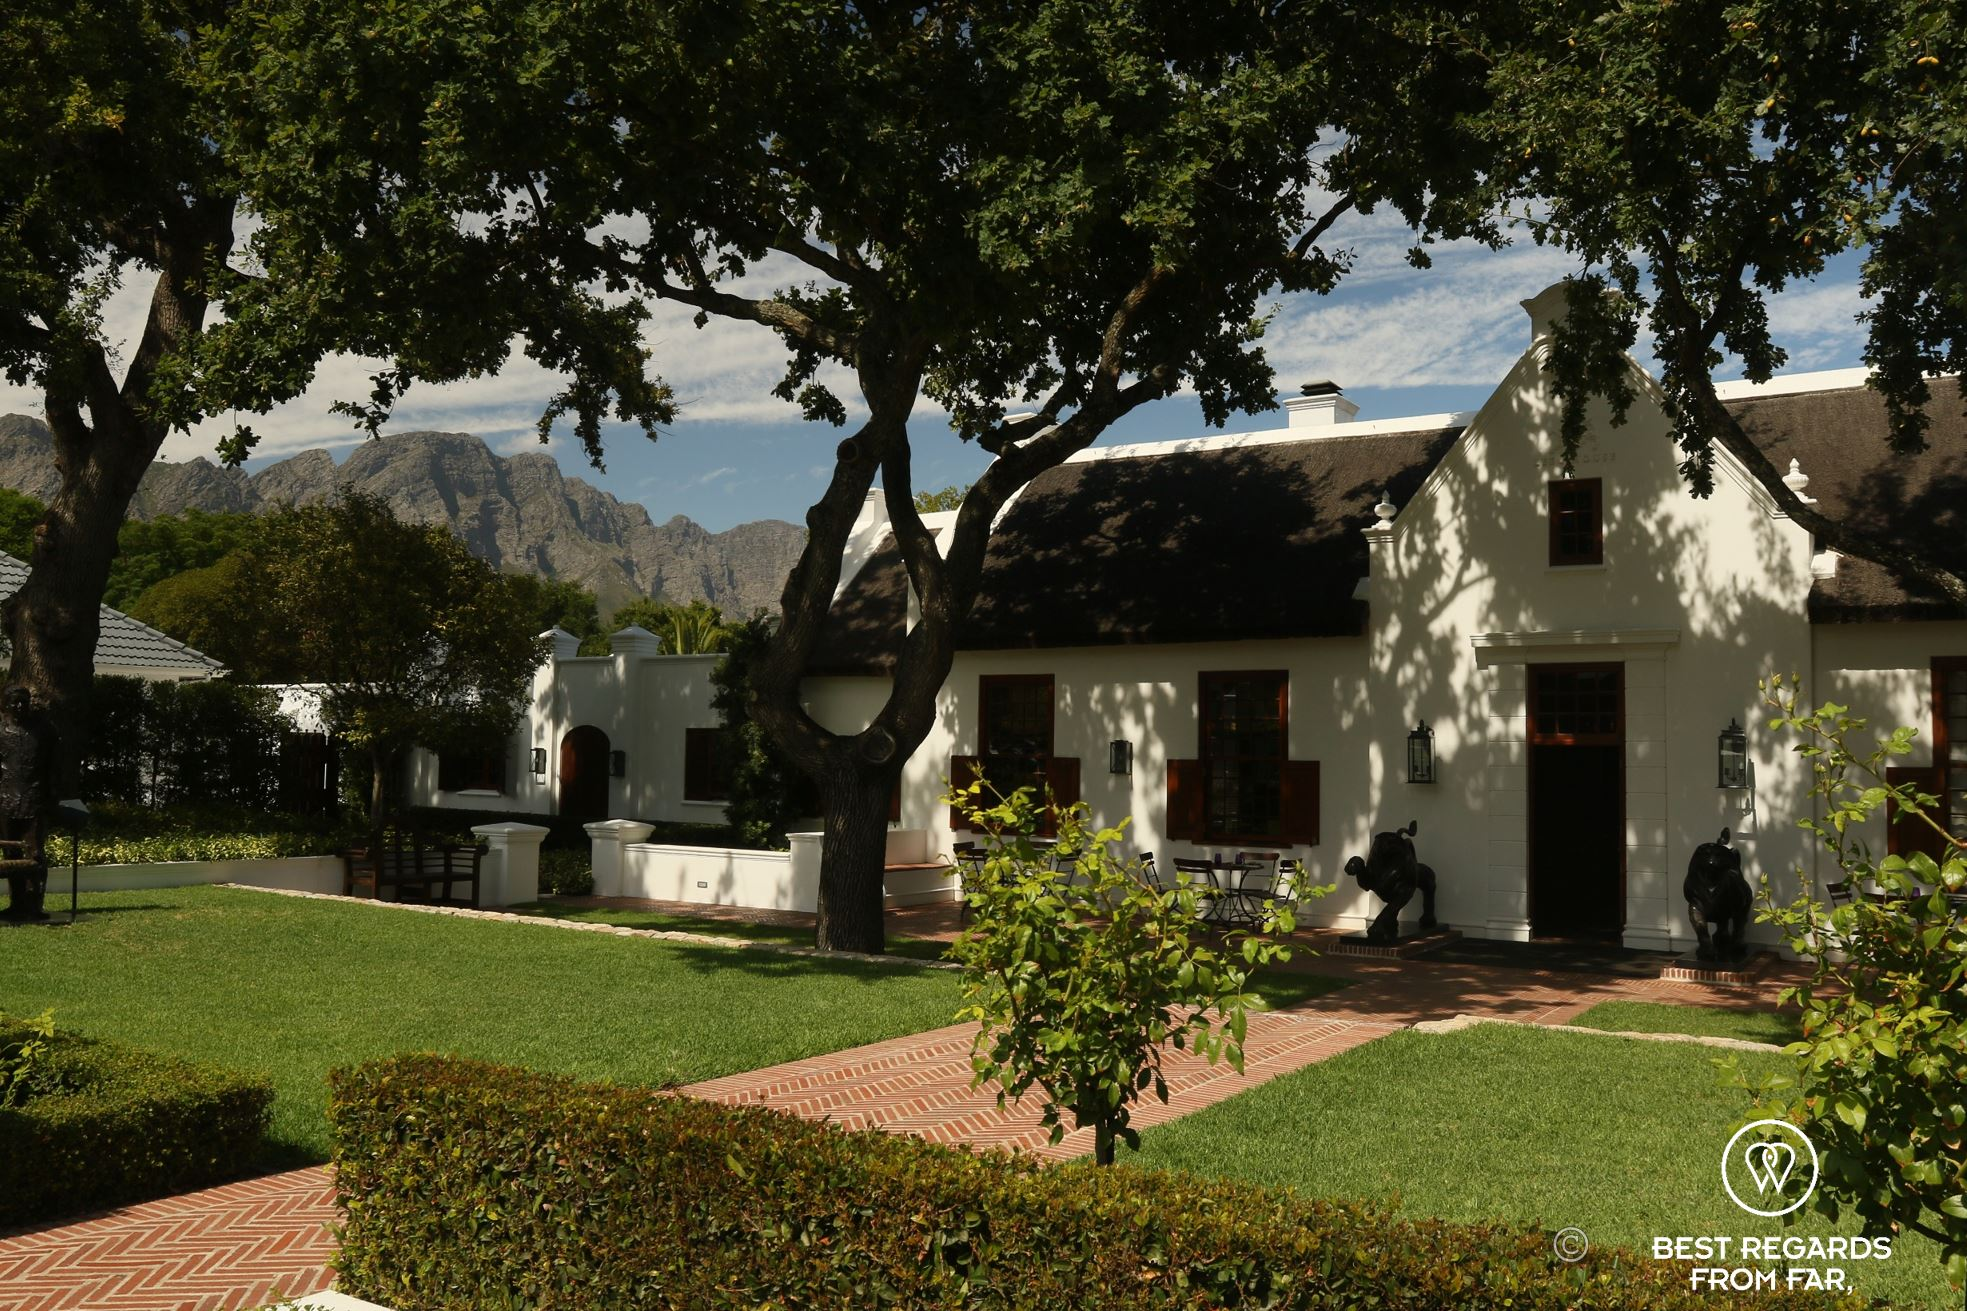 Traditional Cape Dutch estate with a thatched roof in Franschhoek, South Africa